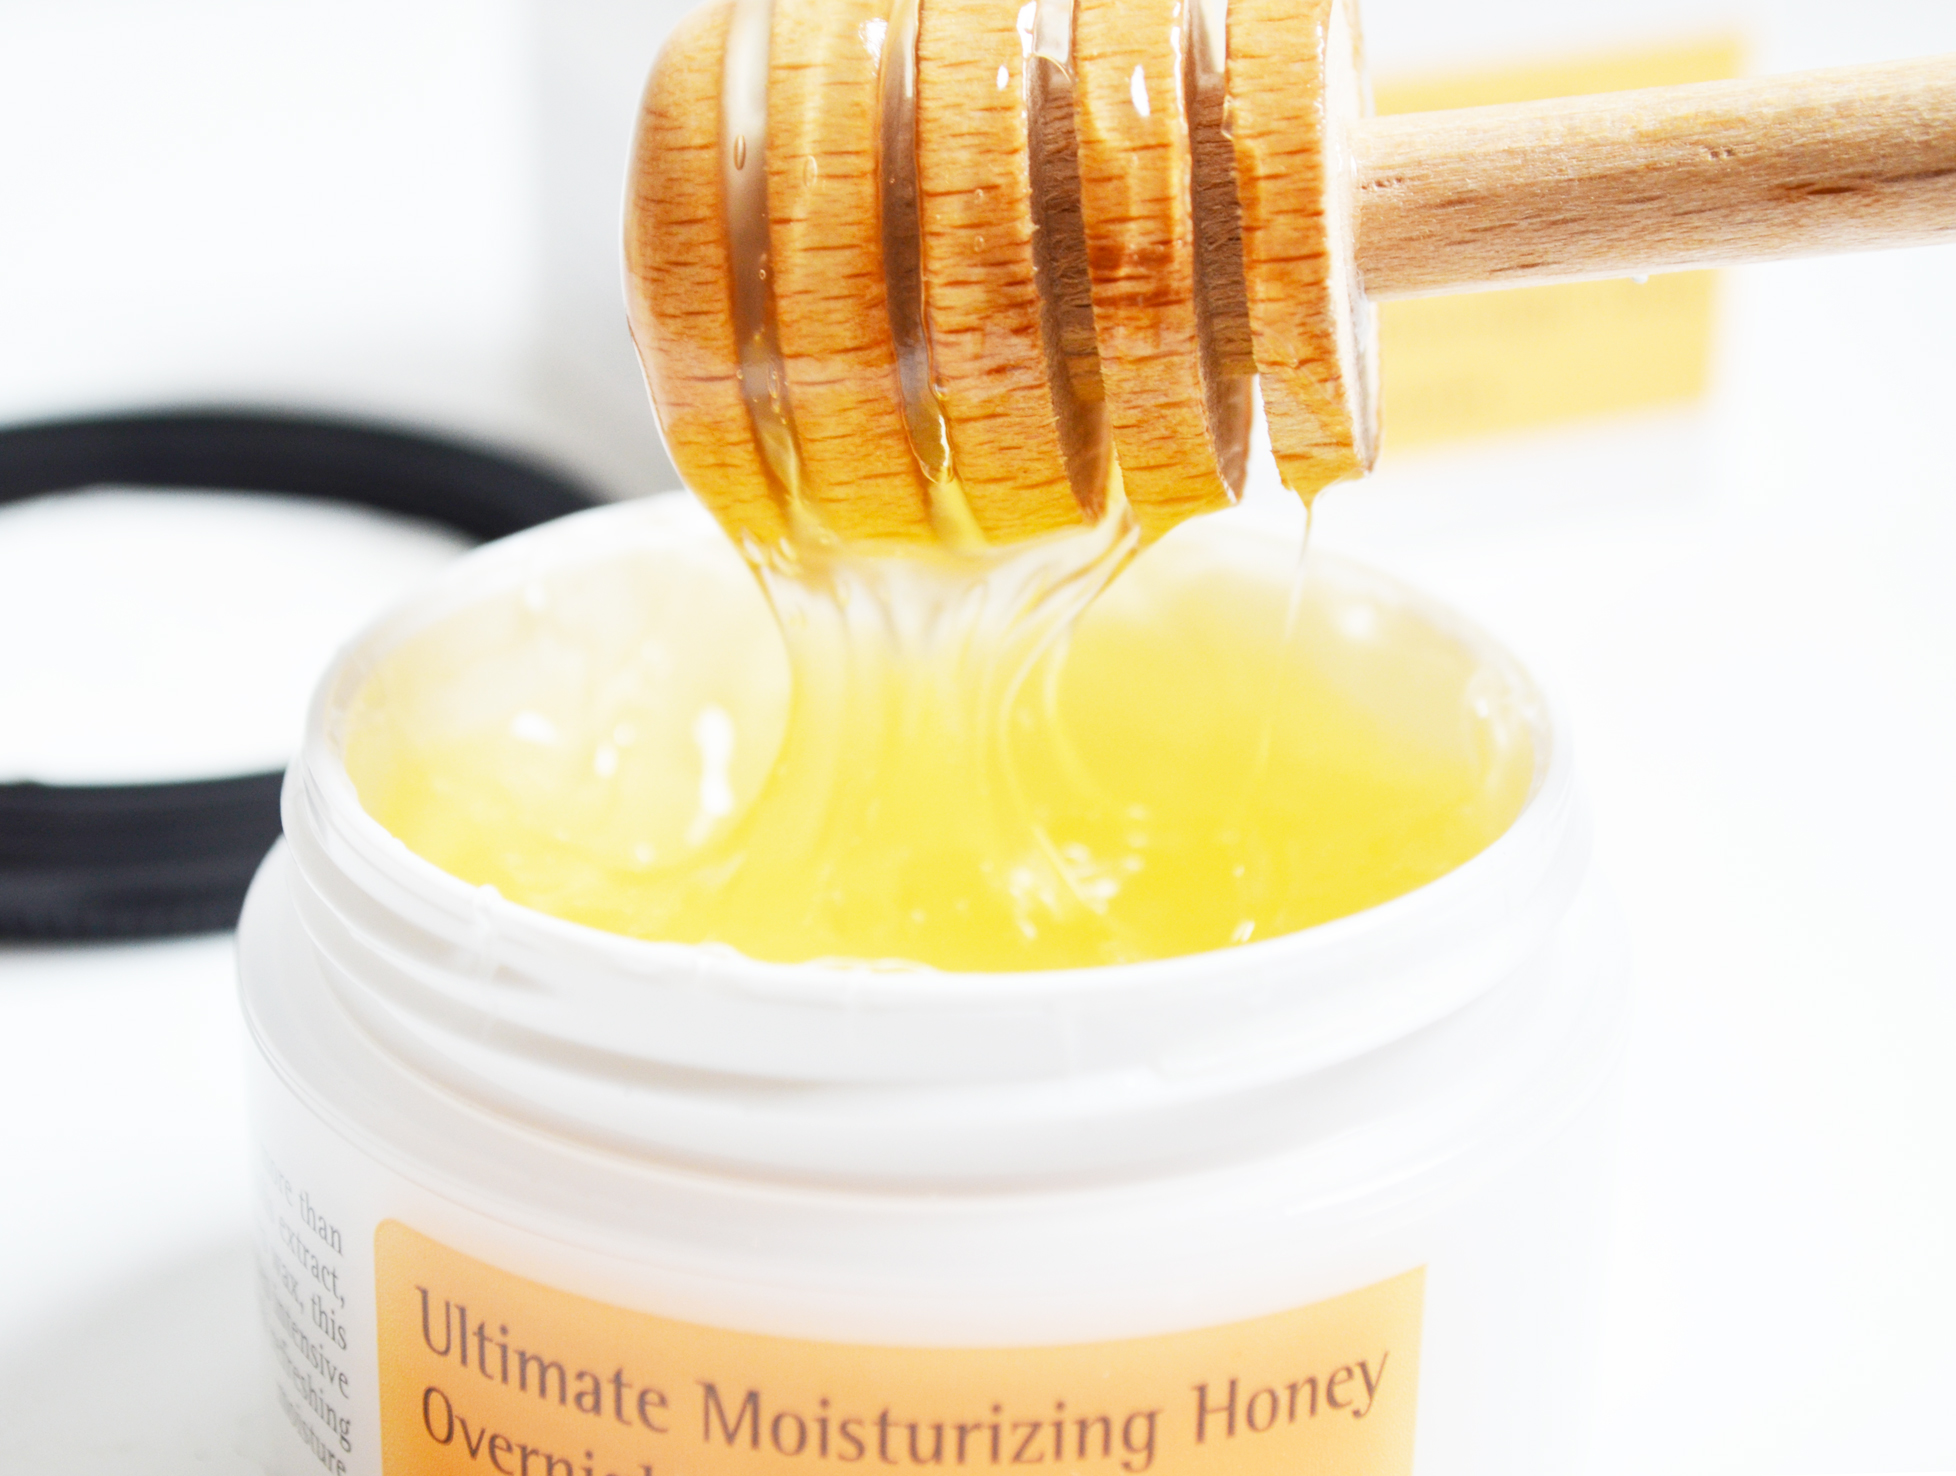 Cosrx-Ultimate-Moisturizing-Honey-Overnight-Mask-review